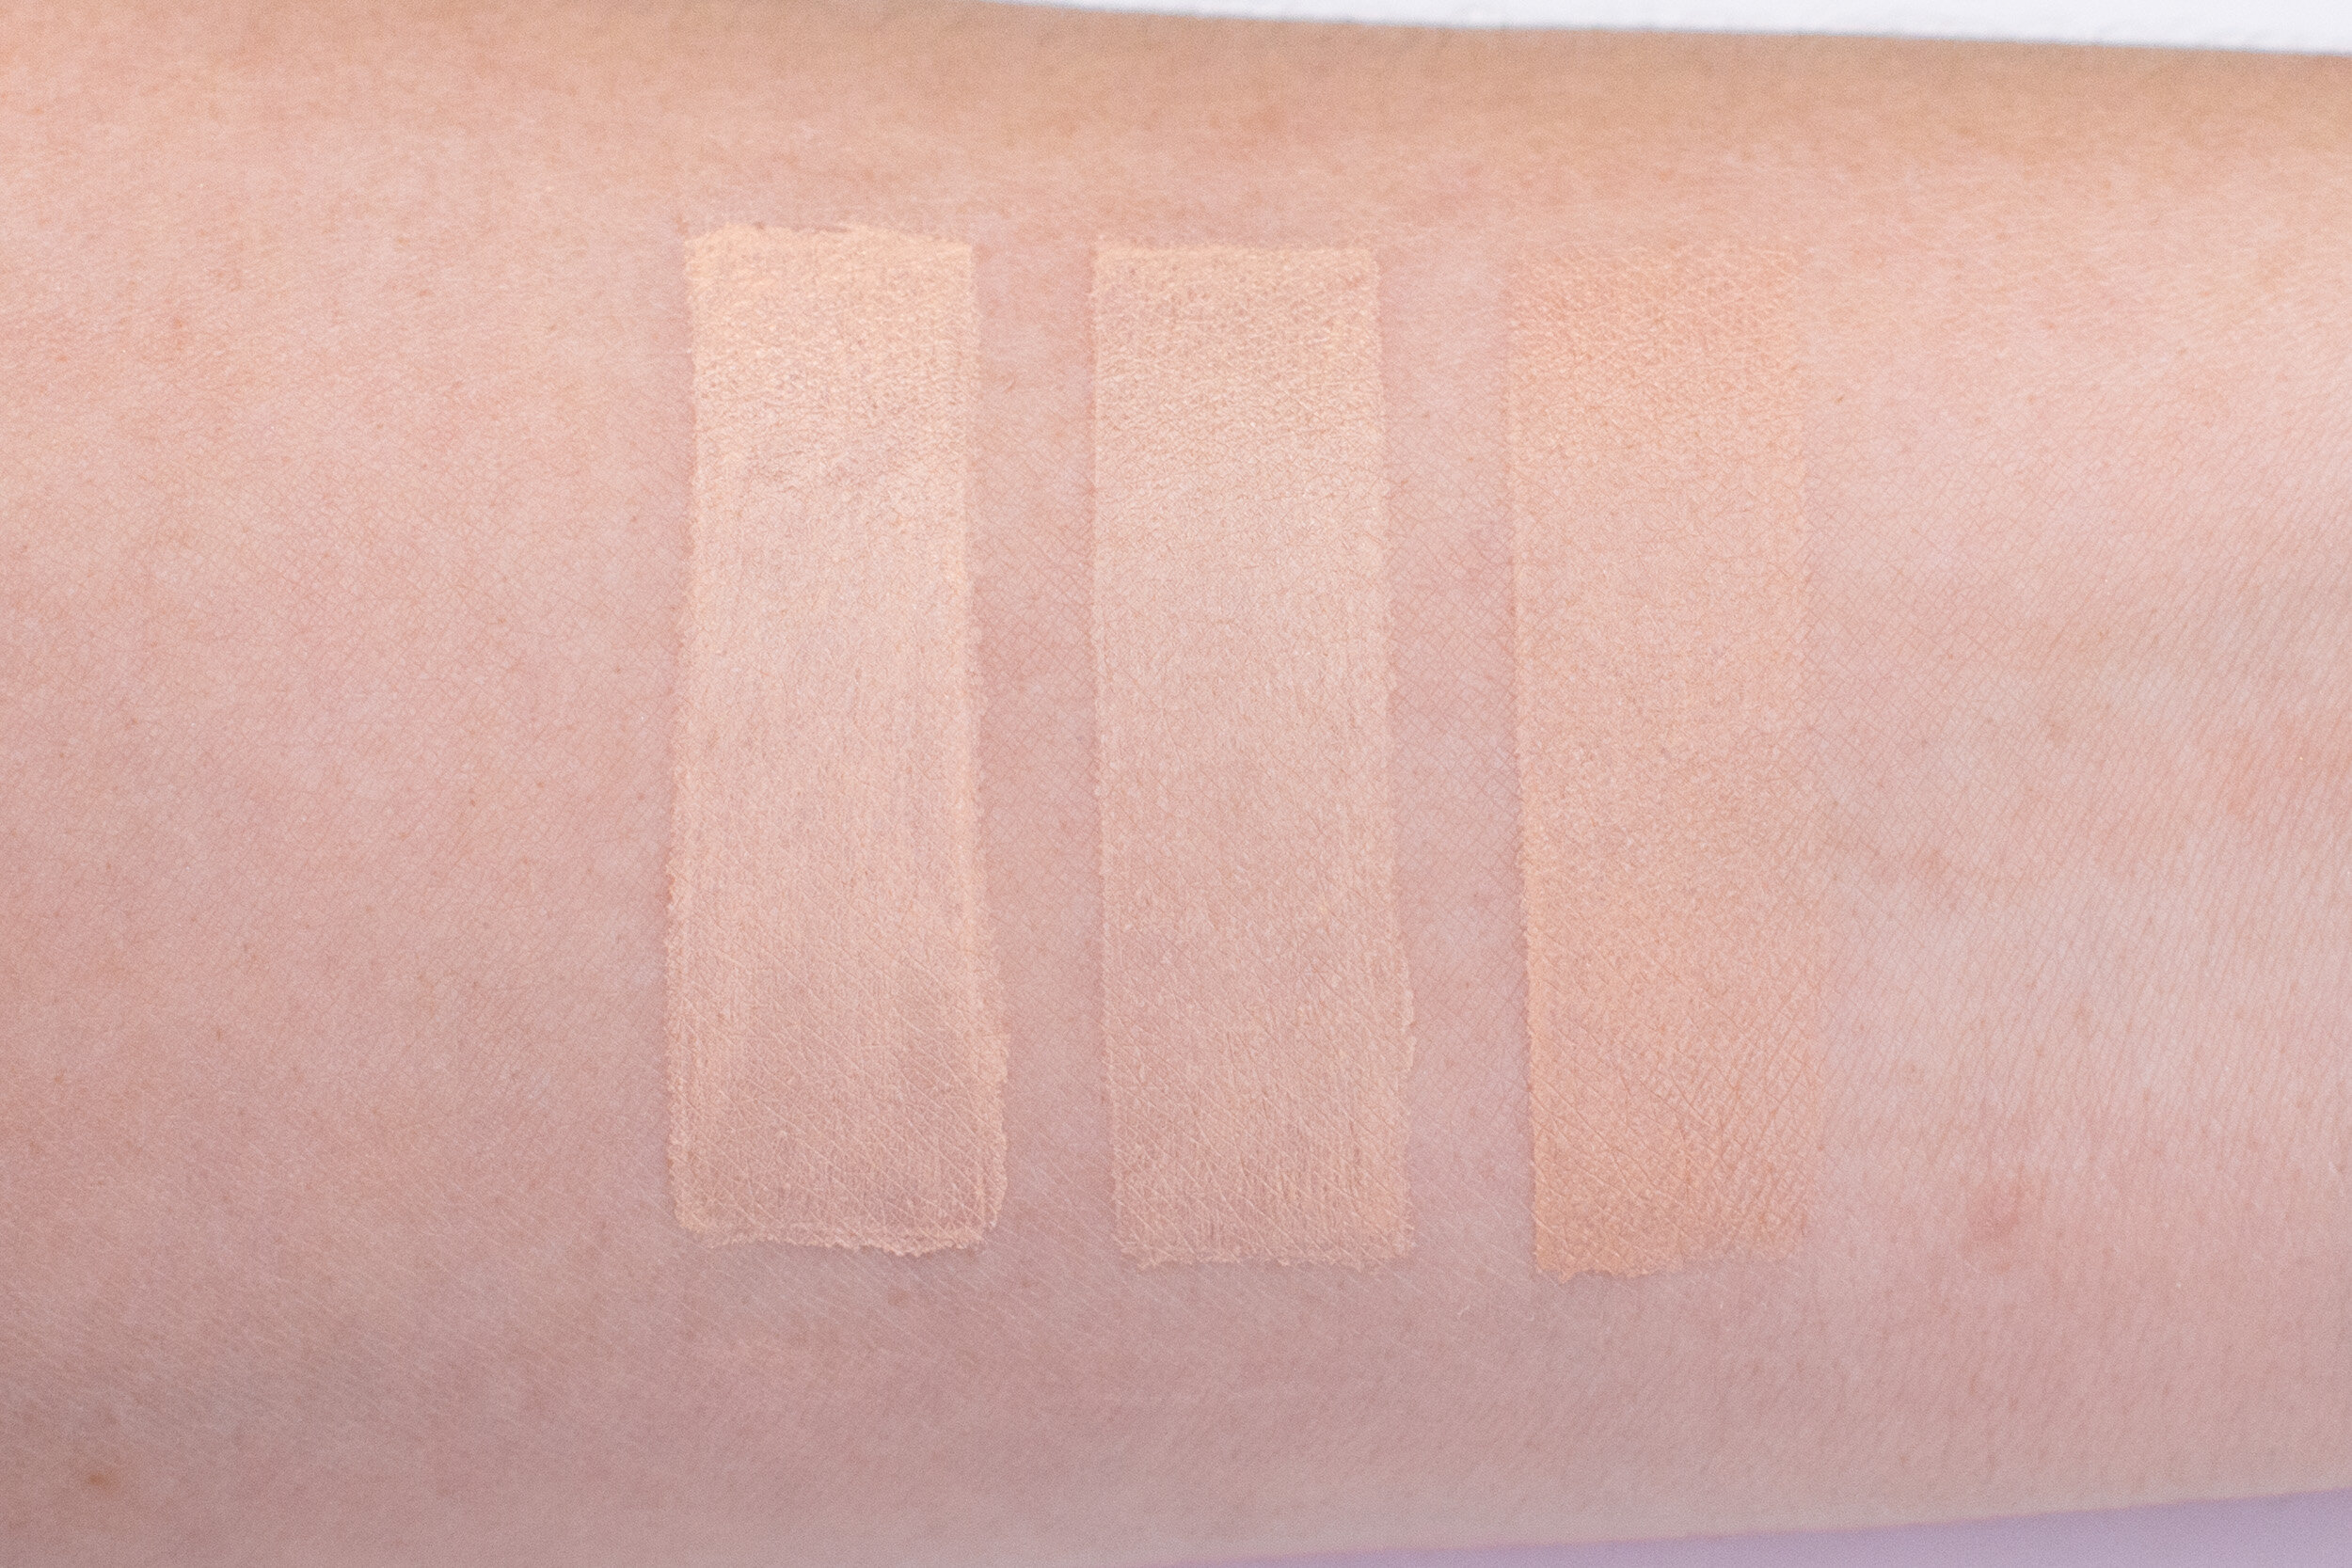 Swatches, from left: 01 Light, 02 Nude, and 03 Shell